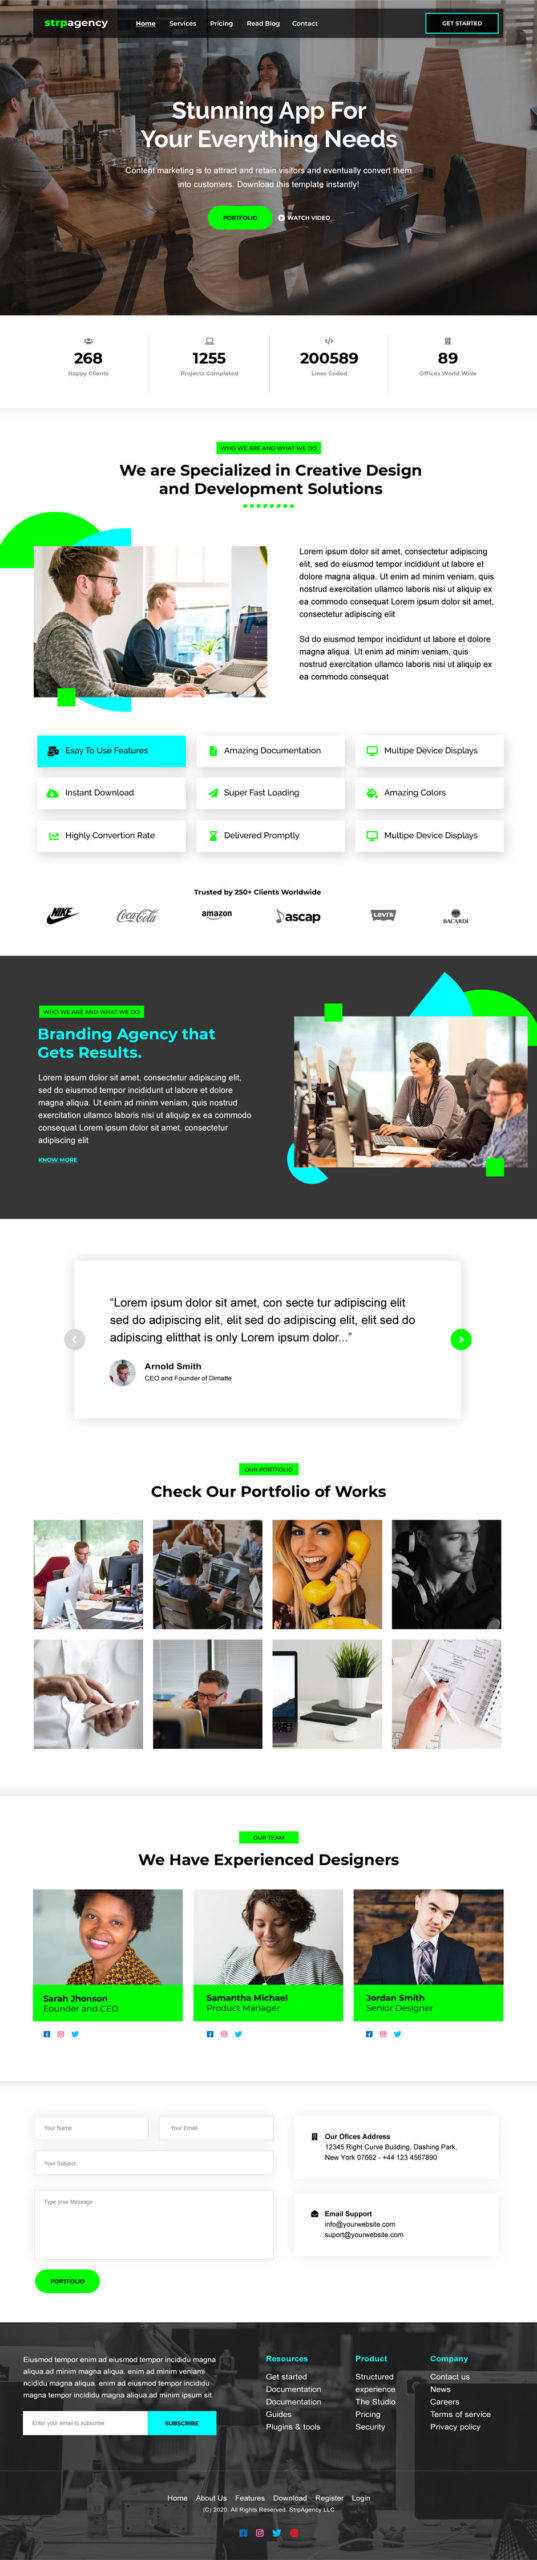 Startup Agency Landing Page